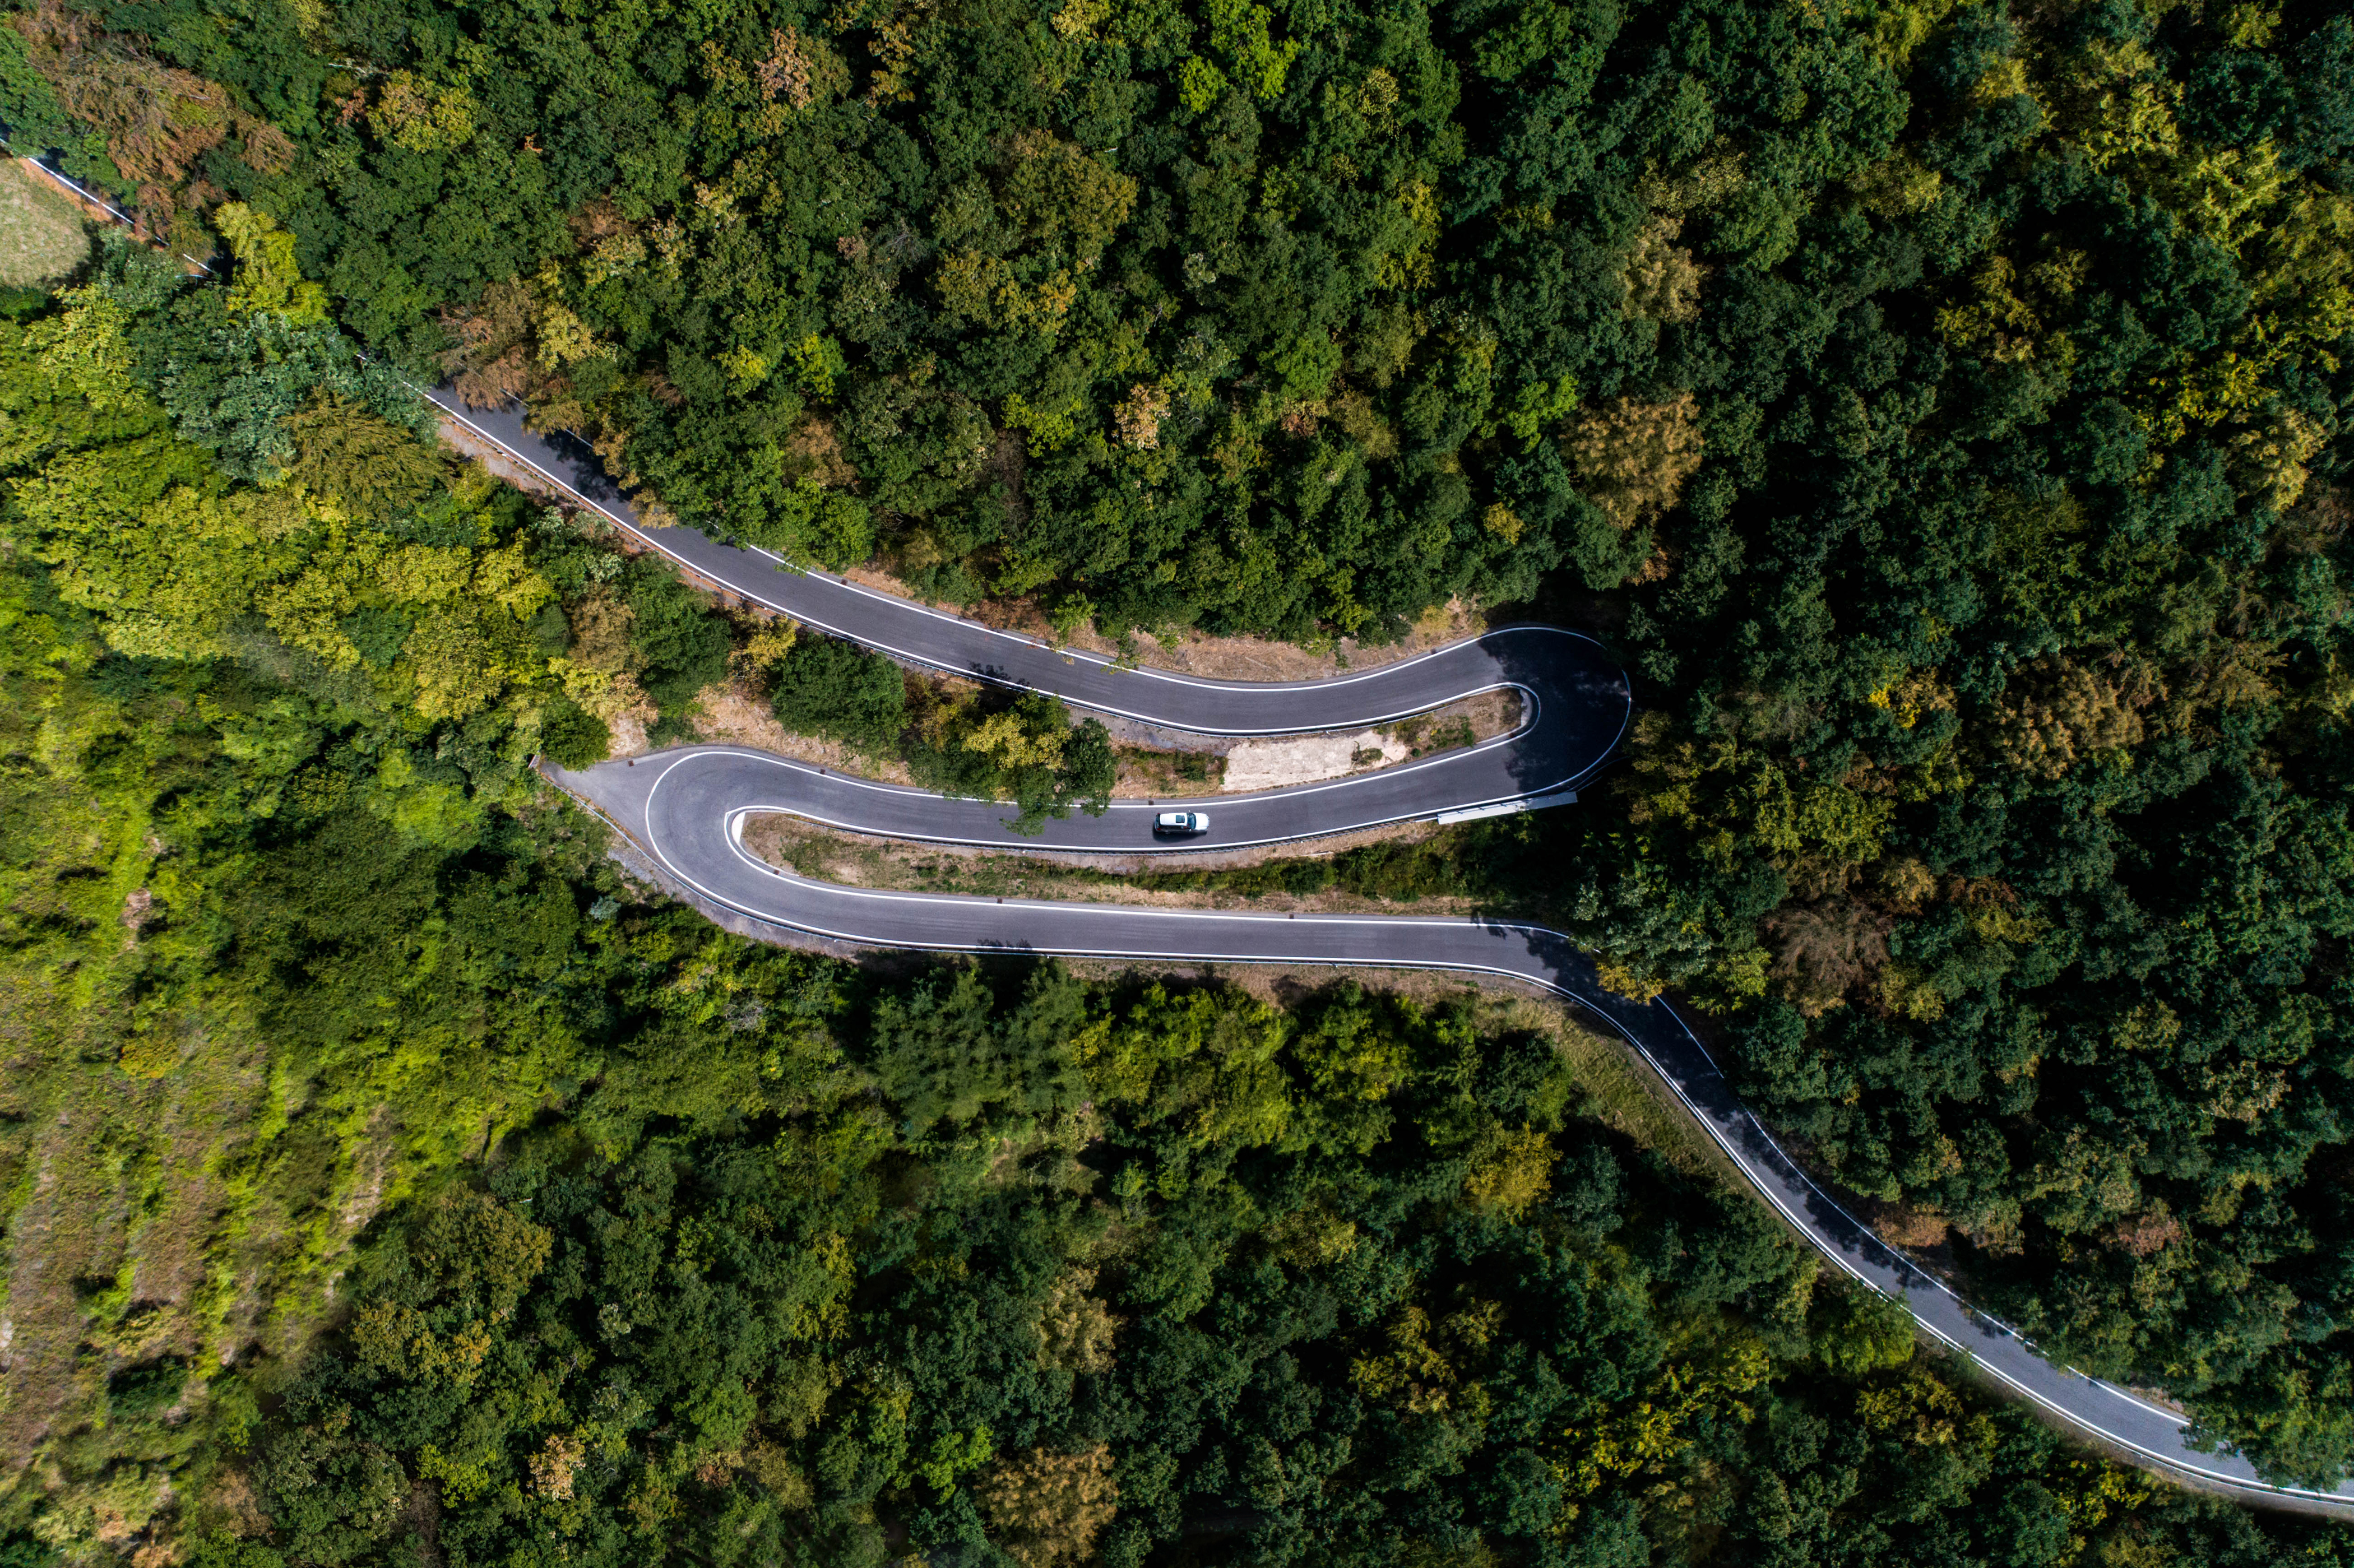 Winding road serpentine from a high mountain pass in the mosel village Brodenbach Germany Aerial view.